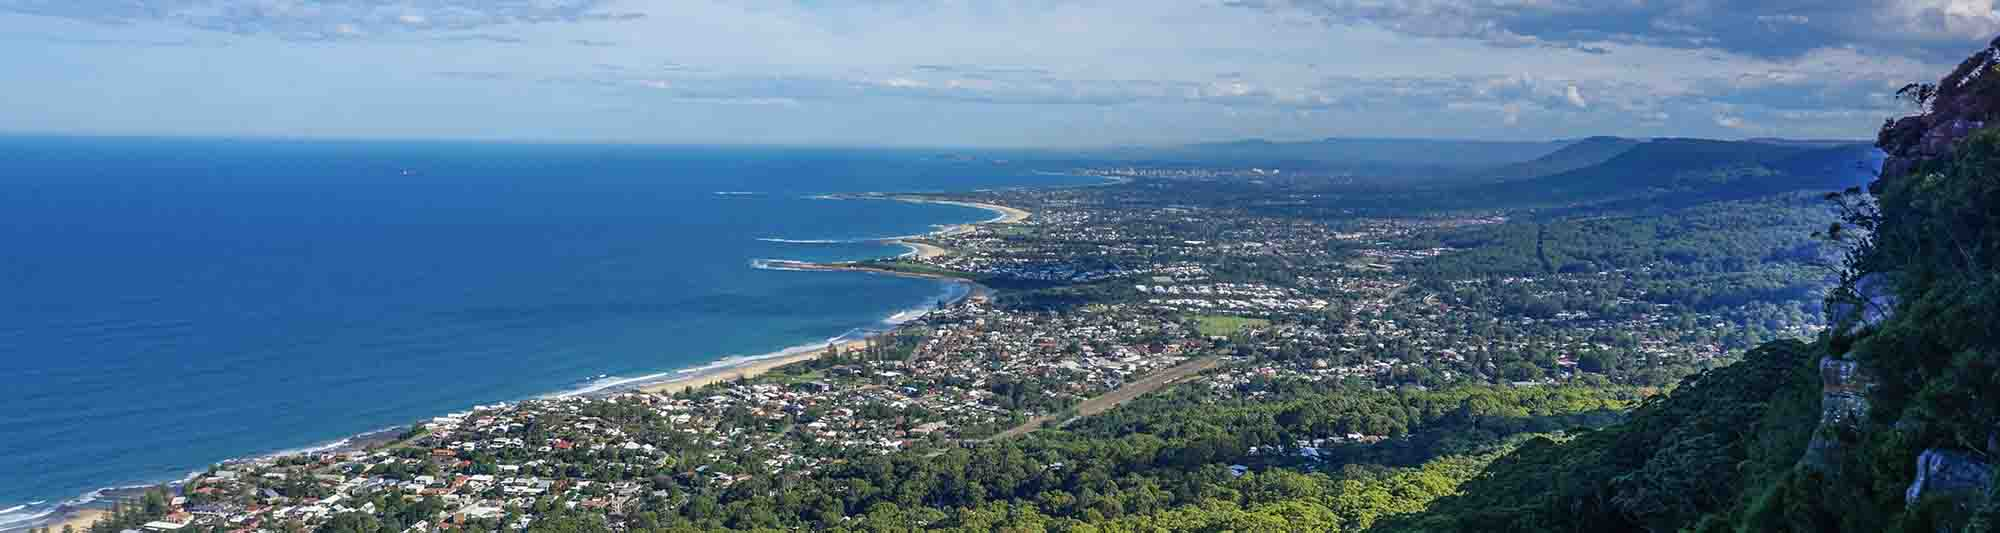 aerial view of wollongong